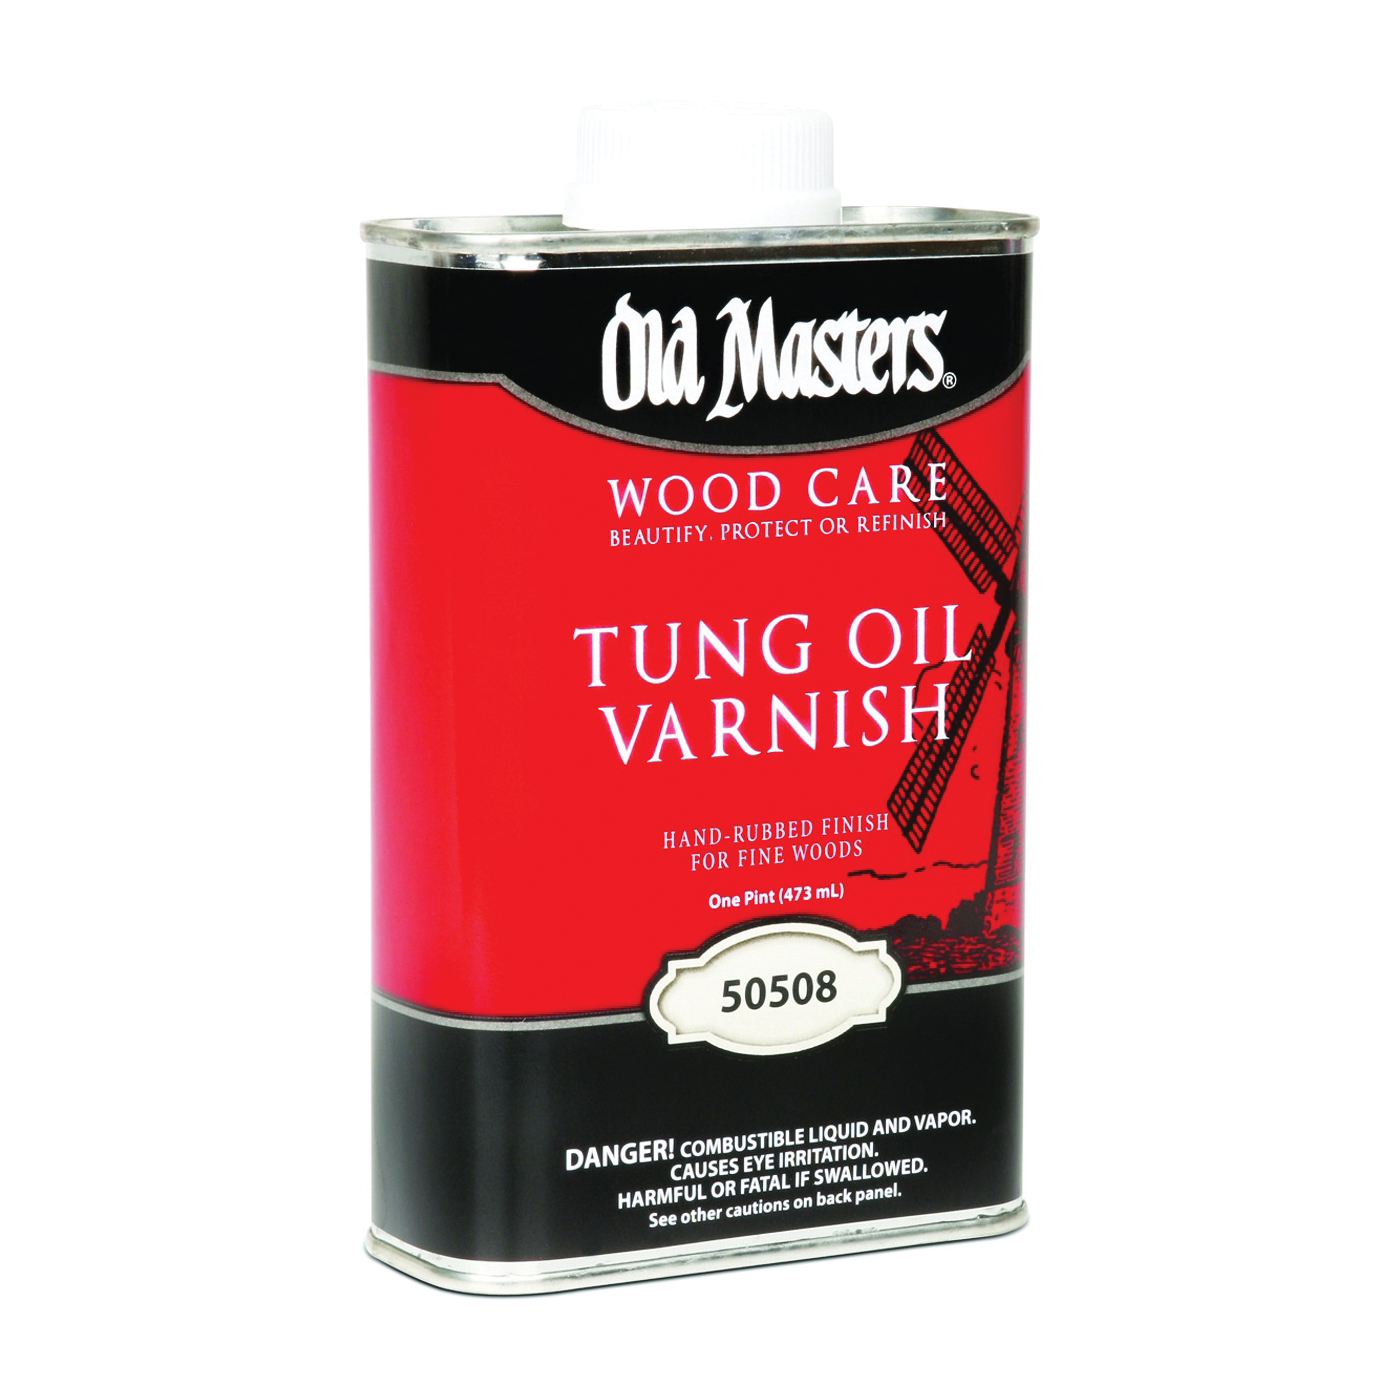 Picture of Old Masters 50508 Tung Oil Varnish, Liquid, 1 pt, Can